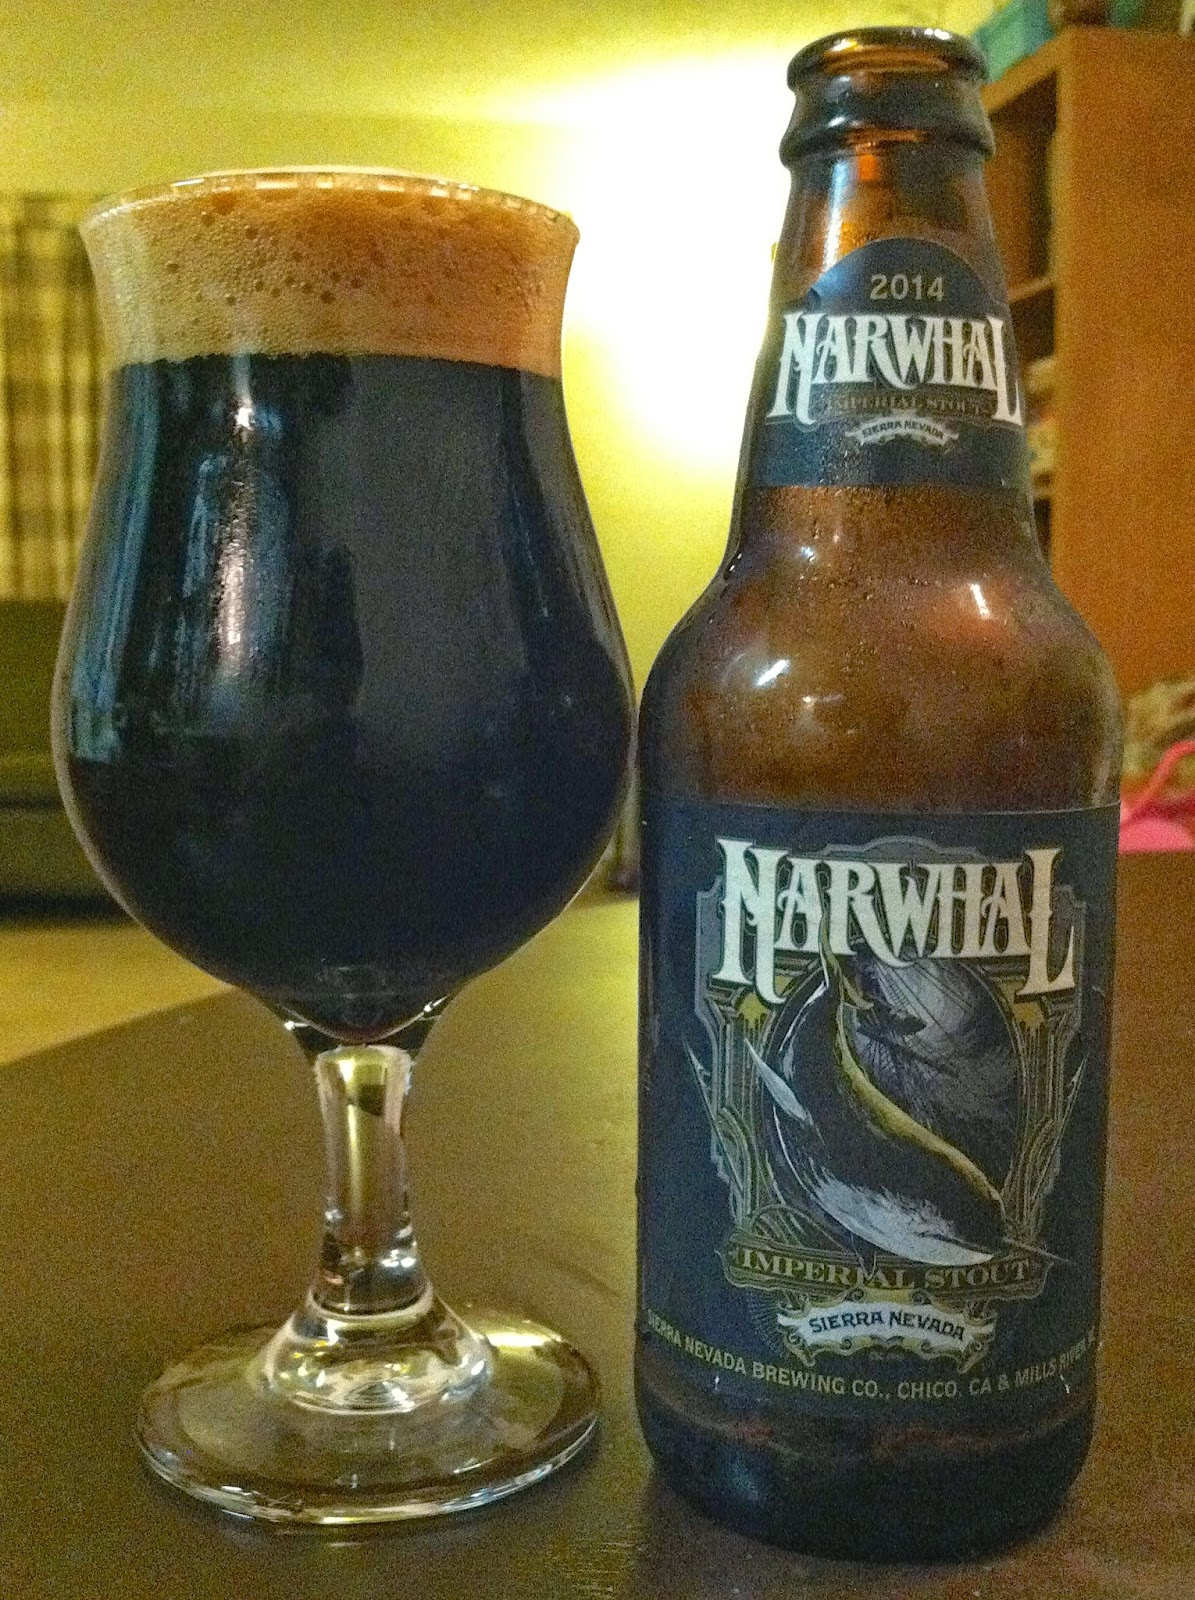 Sierra Nevada Narwhal Imperial Stout 1